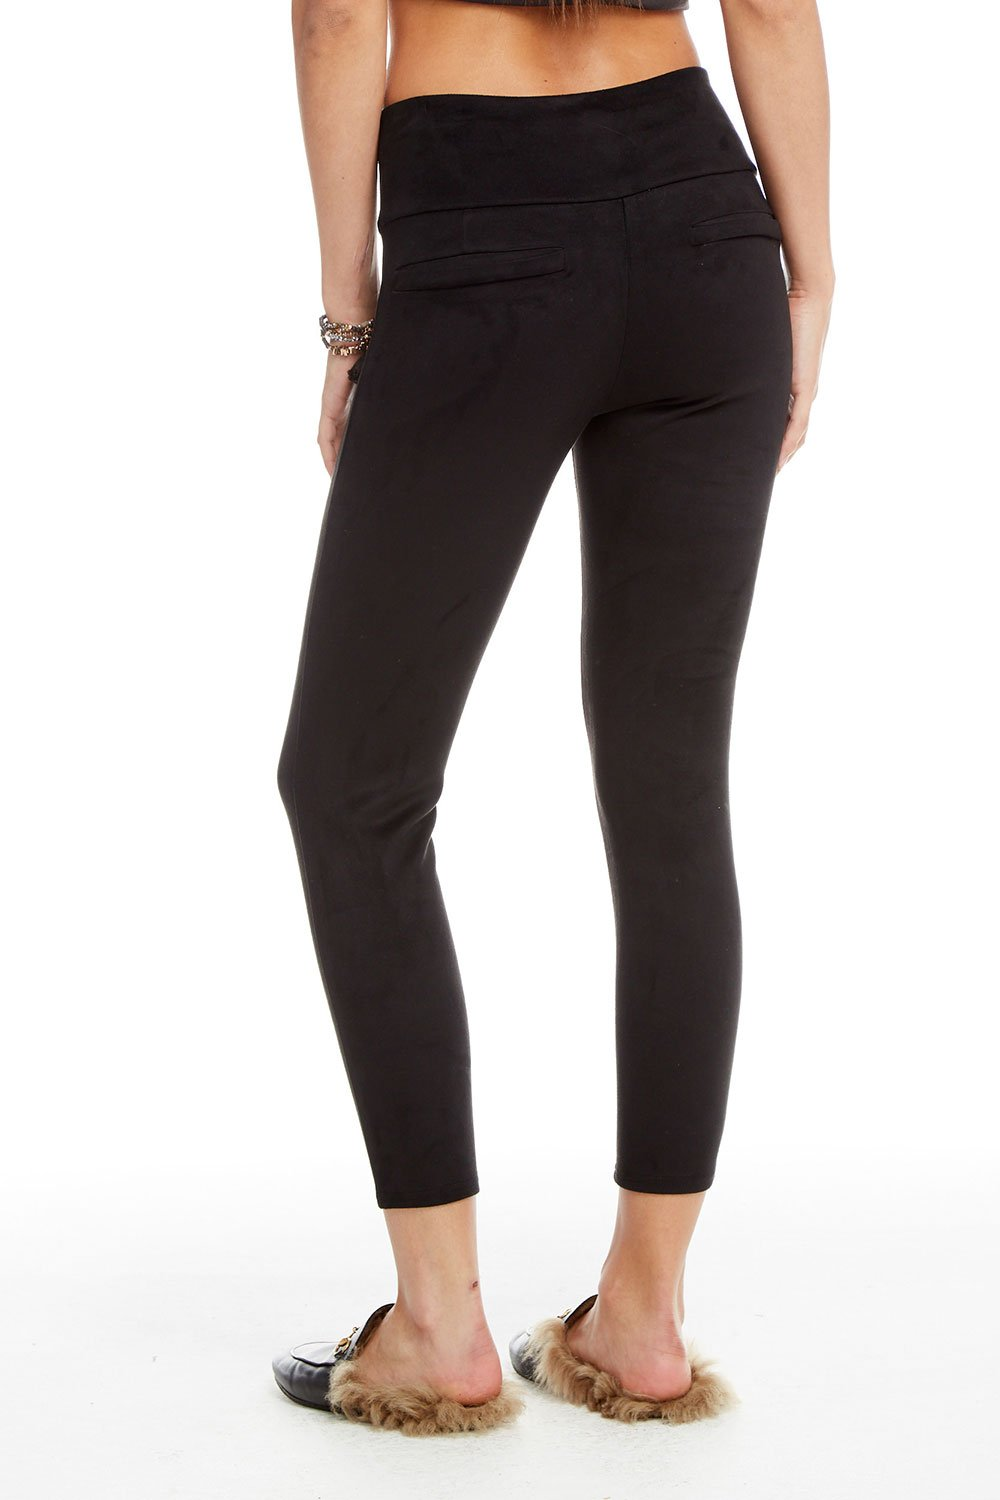 Chaser Faux Suede High Waist Legging